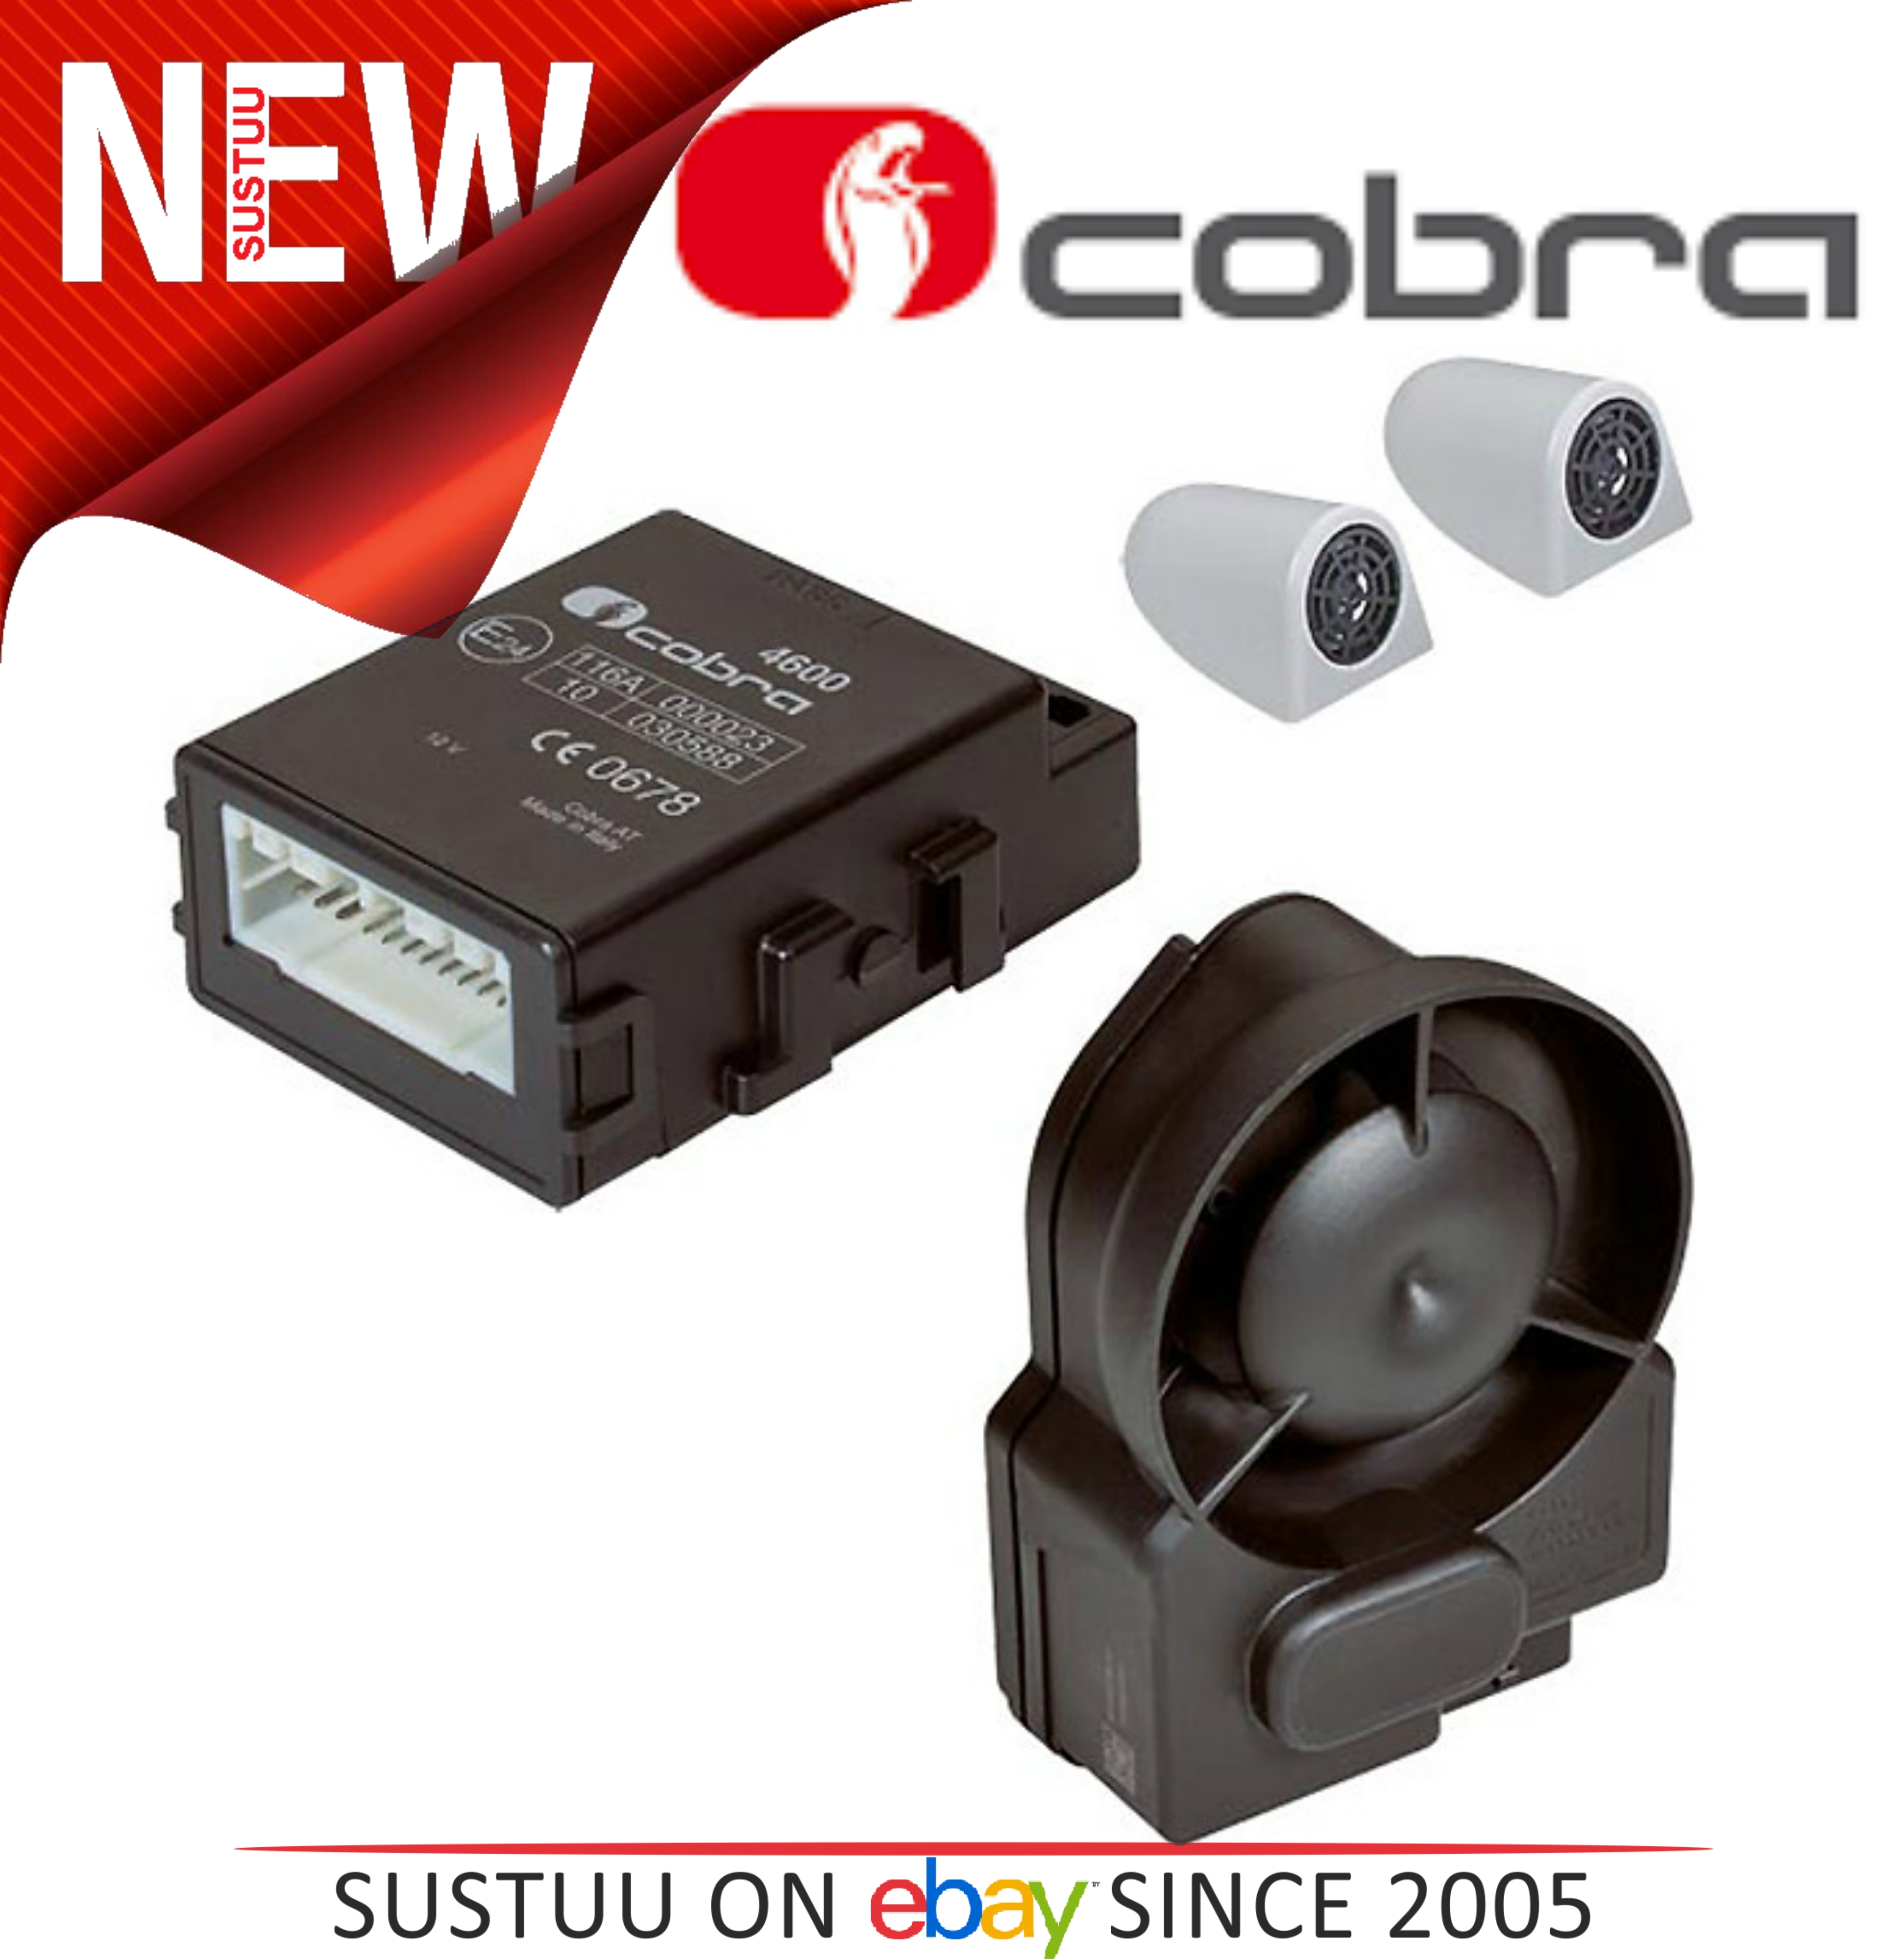 Cobra A4615 P2DC Thatcham Cat 2-1 Wireless Canbus Alarm System With 2 ADR Cards